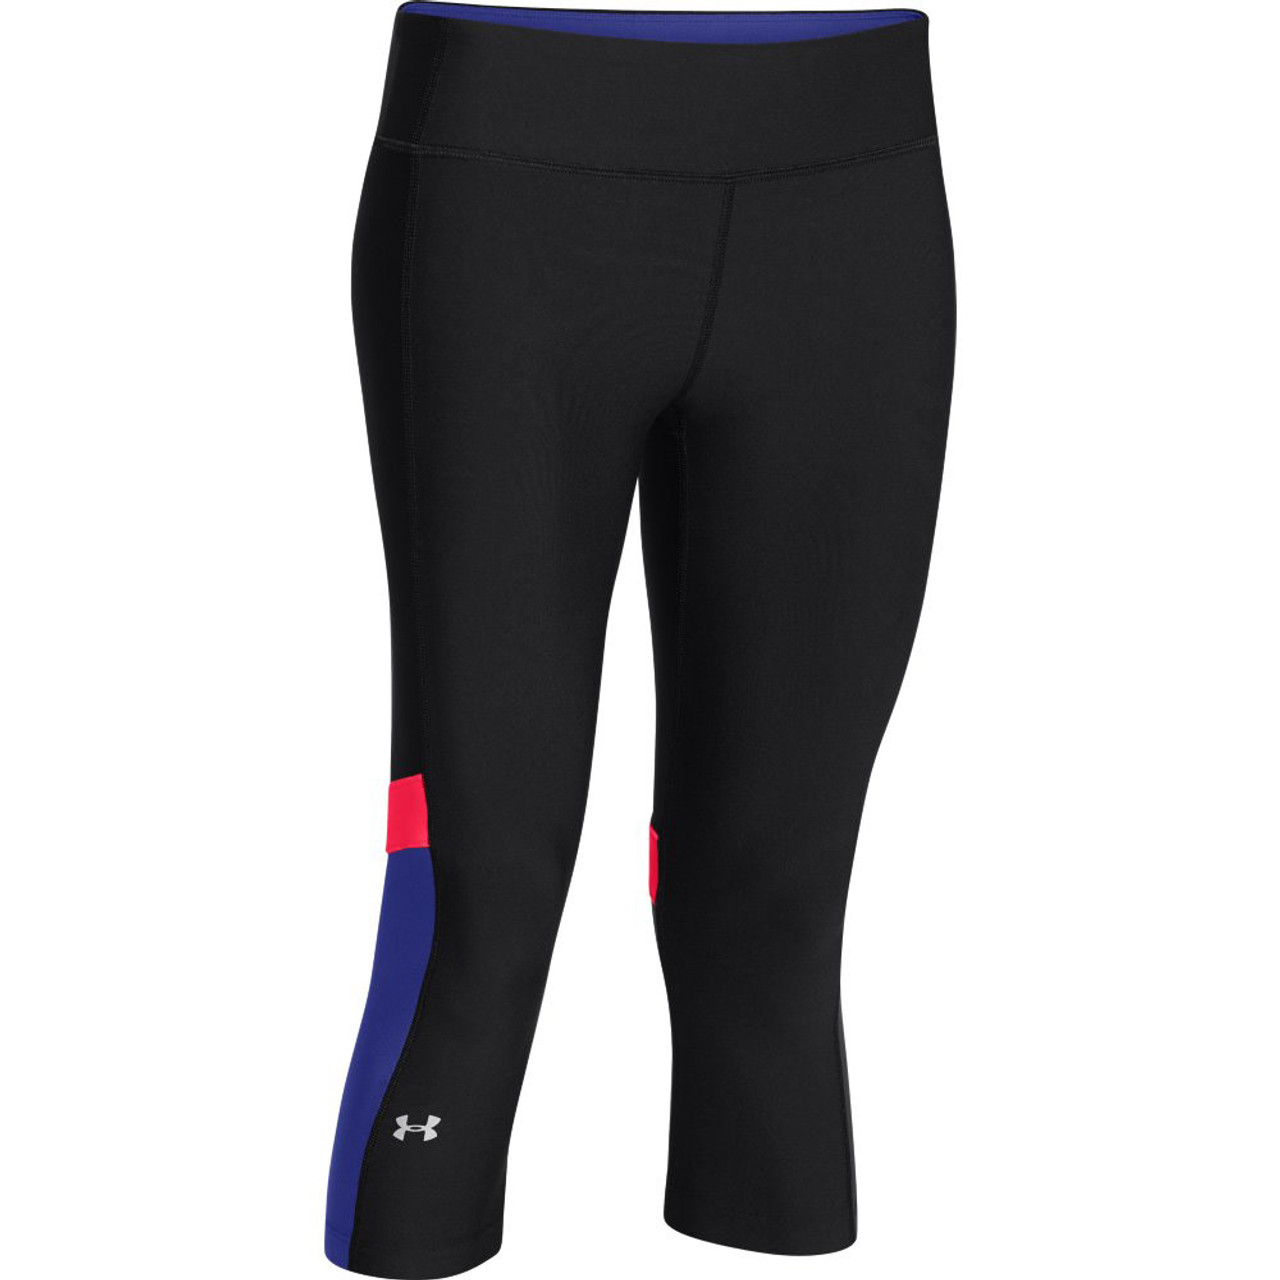 Women s Under Armour Heatgear Alpha Novelty Capri - Sieverts Sporting Goods 46170effc